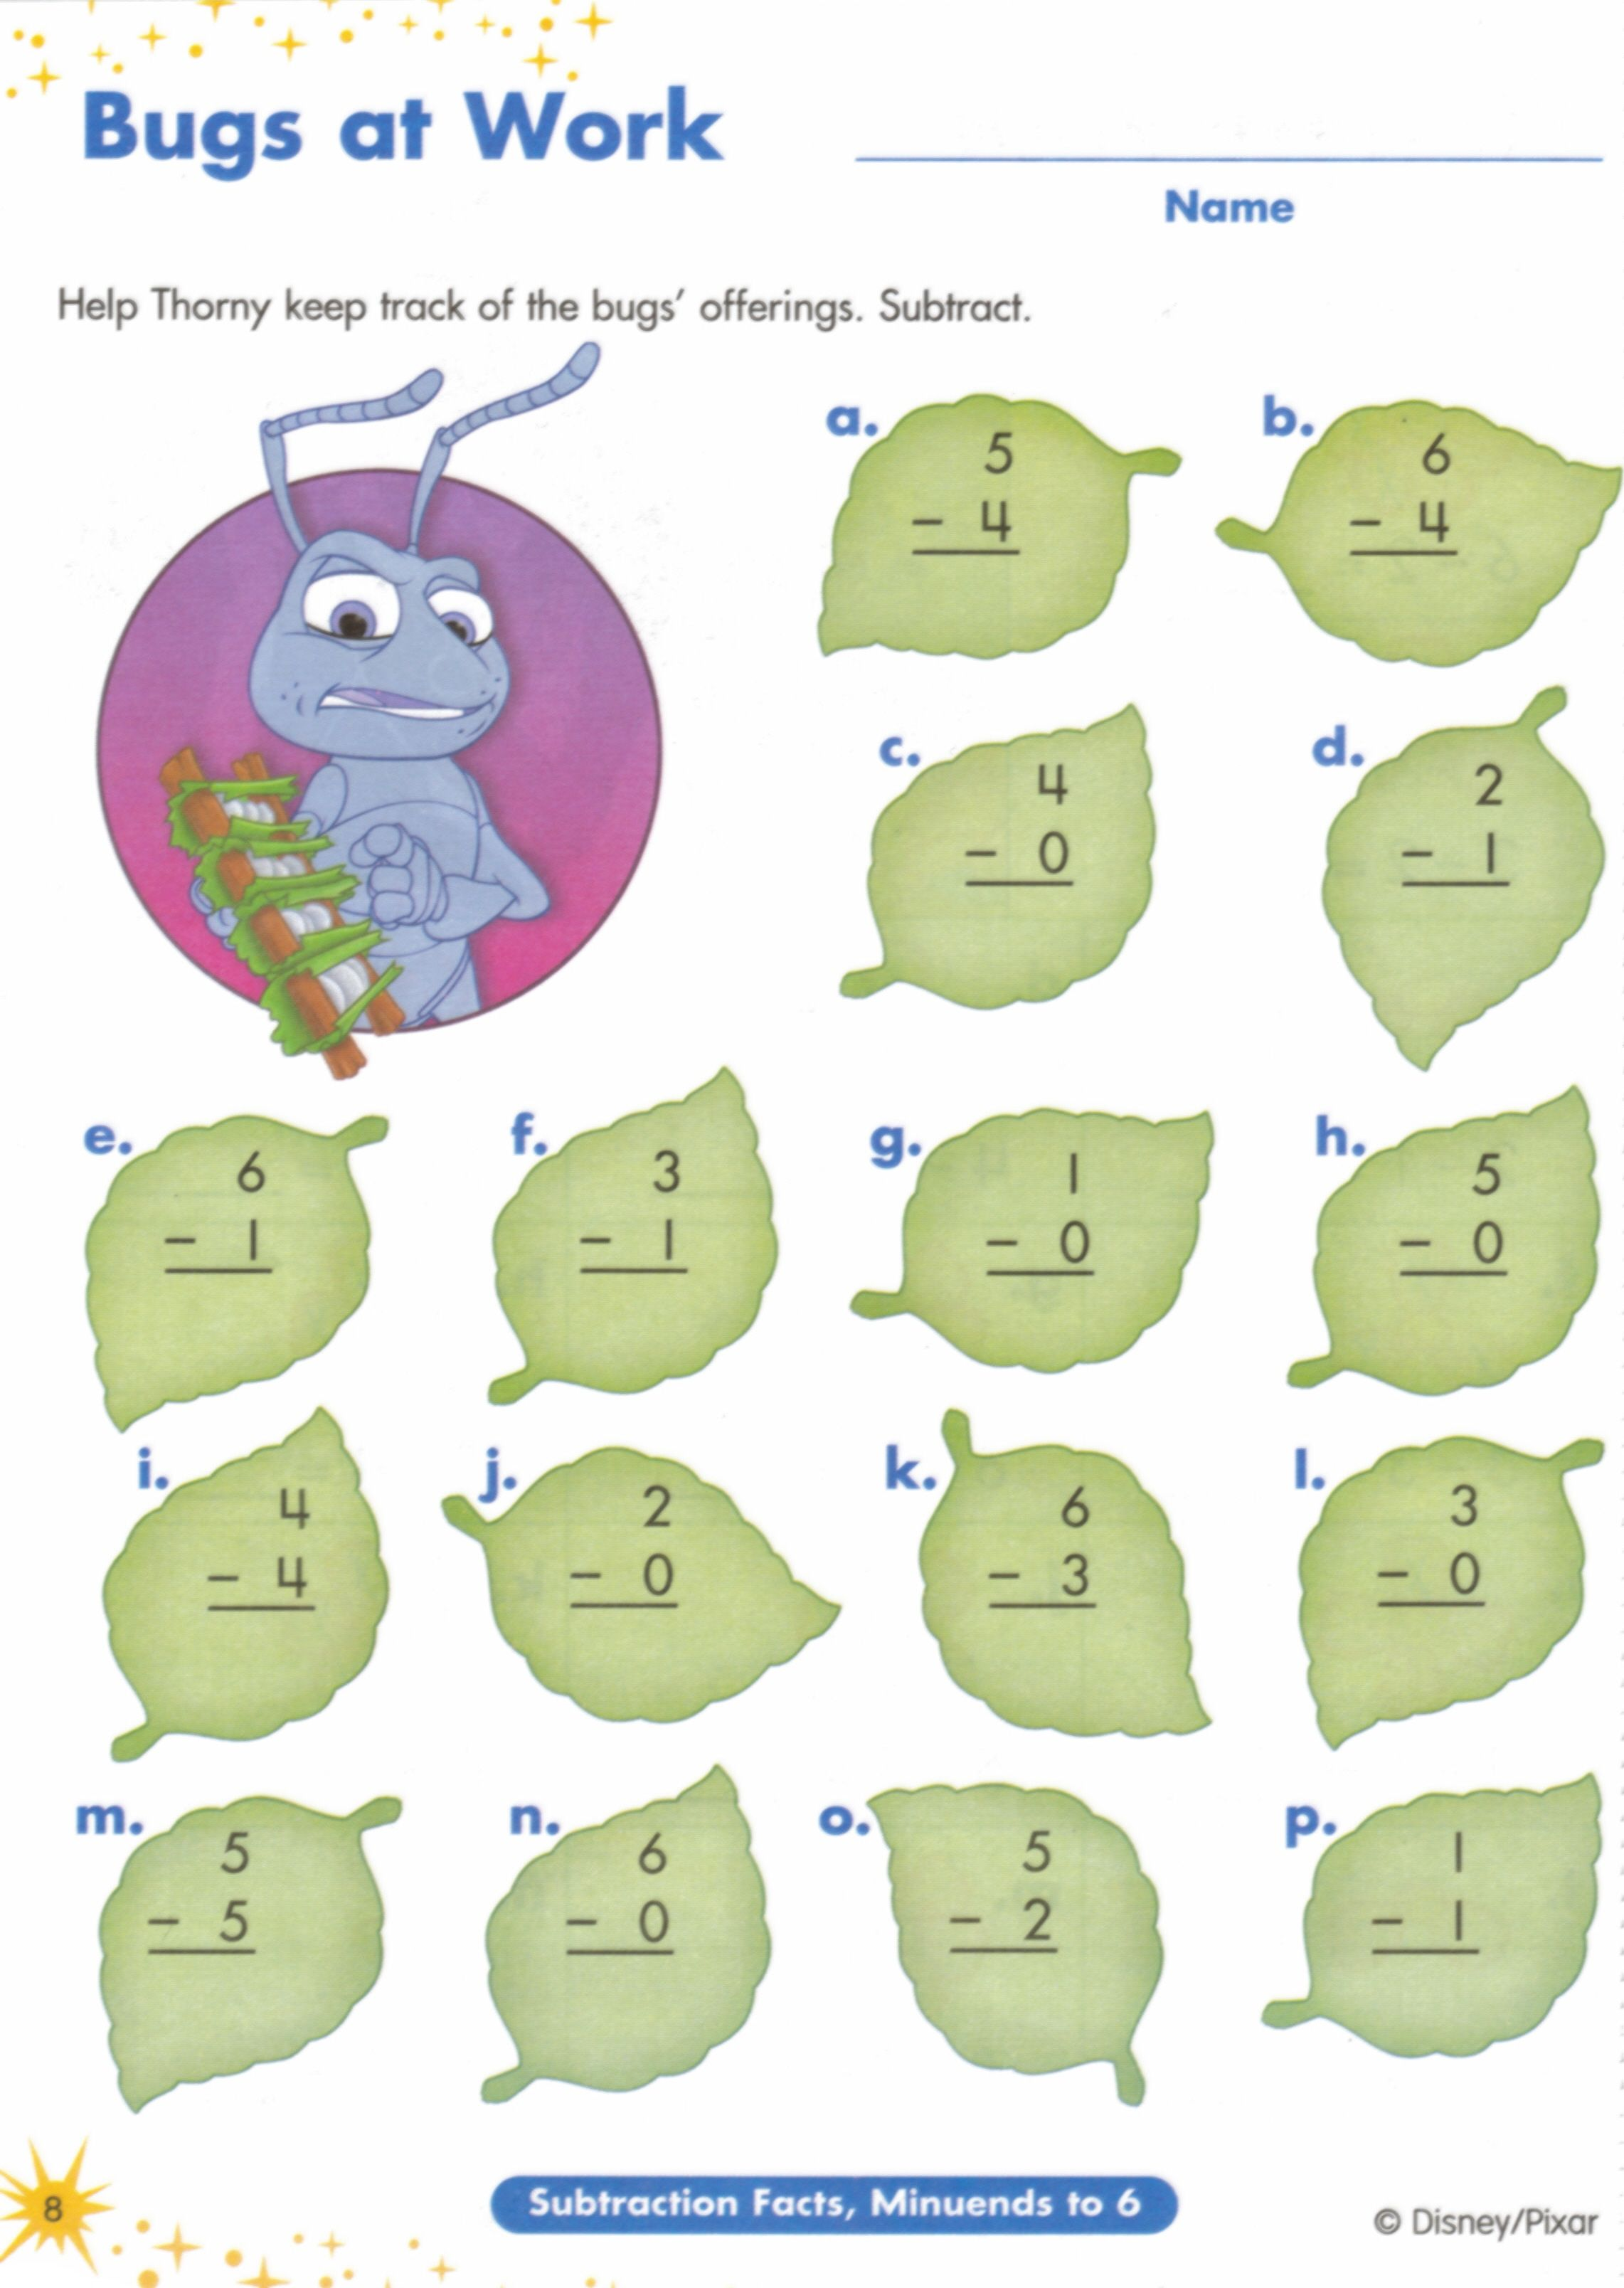 Proatmealus  Pretty  Images About Worksheets On Pinterest  Fun Facts For Kids  With Gorgeous  Images About Worksheets On Pinterest  Fun Facts For Kids Earth Day Worksheets And Jungles With Alluring Factors Of A Number Worksheet Also Reading Comprehension Strategies Worksheets In Addition Central America Worksheets And Worksheets For Place Value As Well As Th Grade Common Core Worksheets Additionally Improve Handwriting Worksheets Adults From Pinterestcom With Proatmealus  Gorgeous  Images About Worksheets On Pinterest  Fun Facts For Kids  With Alluring  Images About Worksheets On Pinterest  Fun Facts For Kids Earth Day Worksheets And Jungles And Pretty Factors Of A Number Worksheet Also Reading Comprehension Strategies Worksheets In Addition Central America Worksheets From Pinterestcom